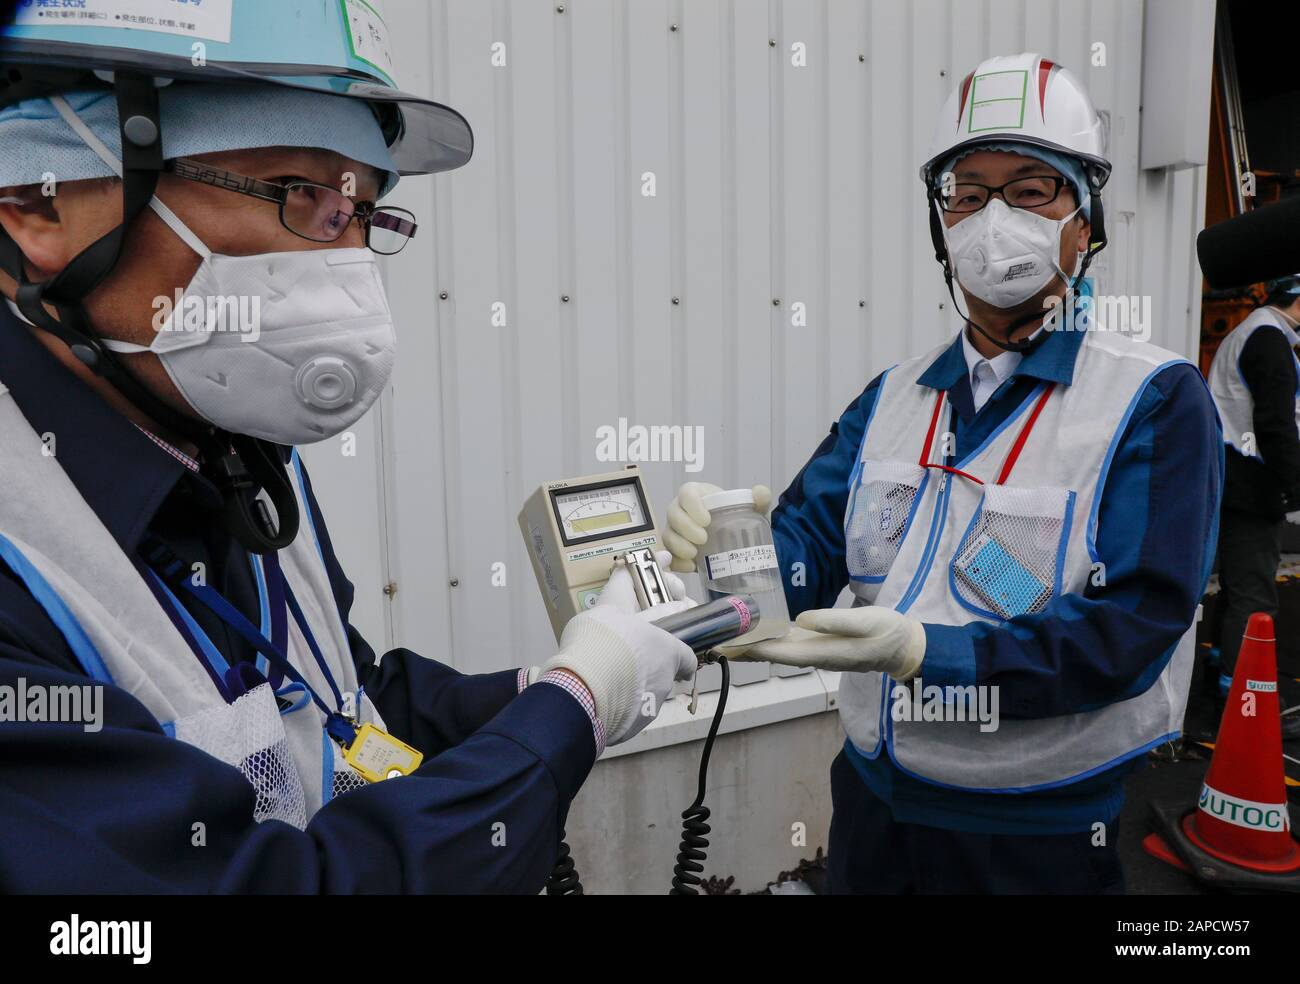 Okuma, Fukushima, Japan. 22nd Jan, 2020. Workers of Tokyo Electric Power Company (TEPCO) Fukushima Daiichi Nuclear Power Plant demonstrate to measure radiation of water processed in ALPS(Multi-nuclide retrieval equipment) II in front of the ALPS II building at the tsunami-devastated nuclear power plant in Okuma town, Fukushima Prefecture, 22 January 2020. The storage tanks including water processed in the ALPS will be full around summer of 2022, TEPCO has told. Japanese government will need to decide soon how manage the processed water still including tritium. (Credit Image: © Kimimasa May Stock Photo